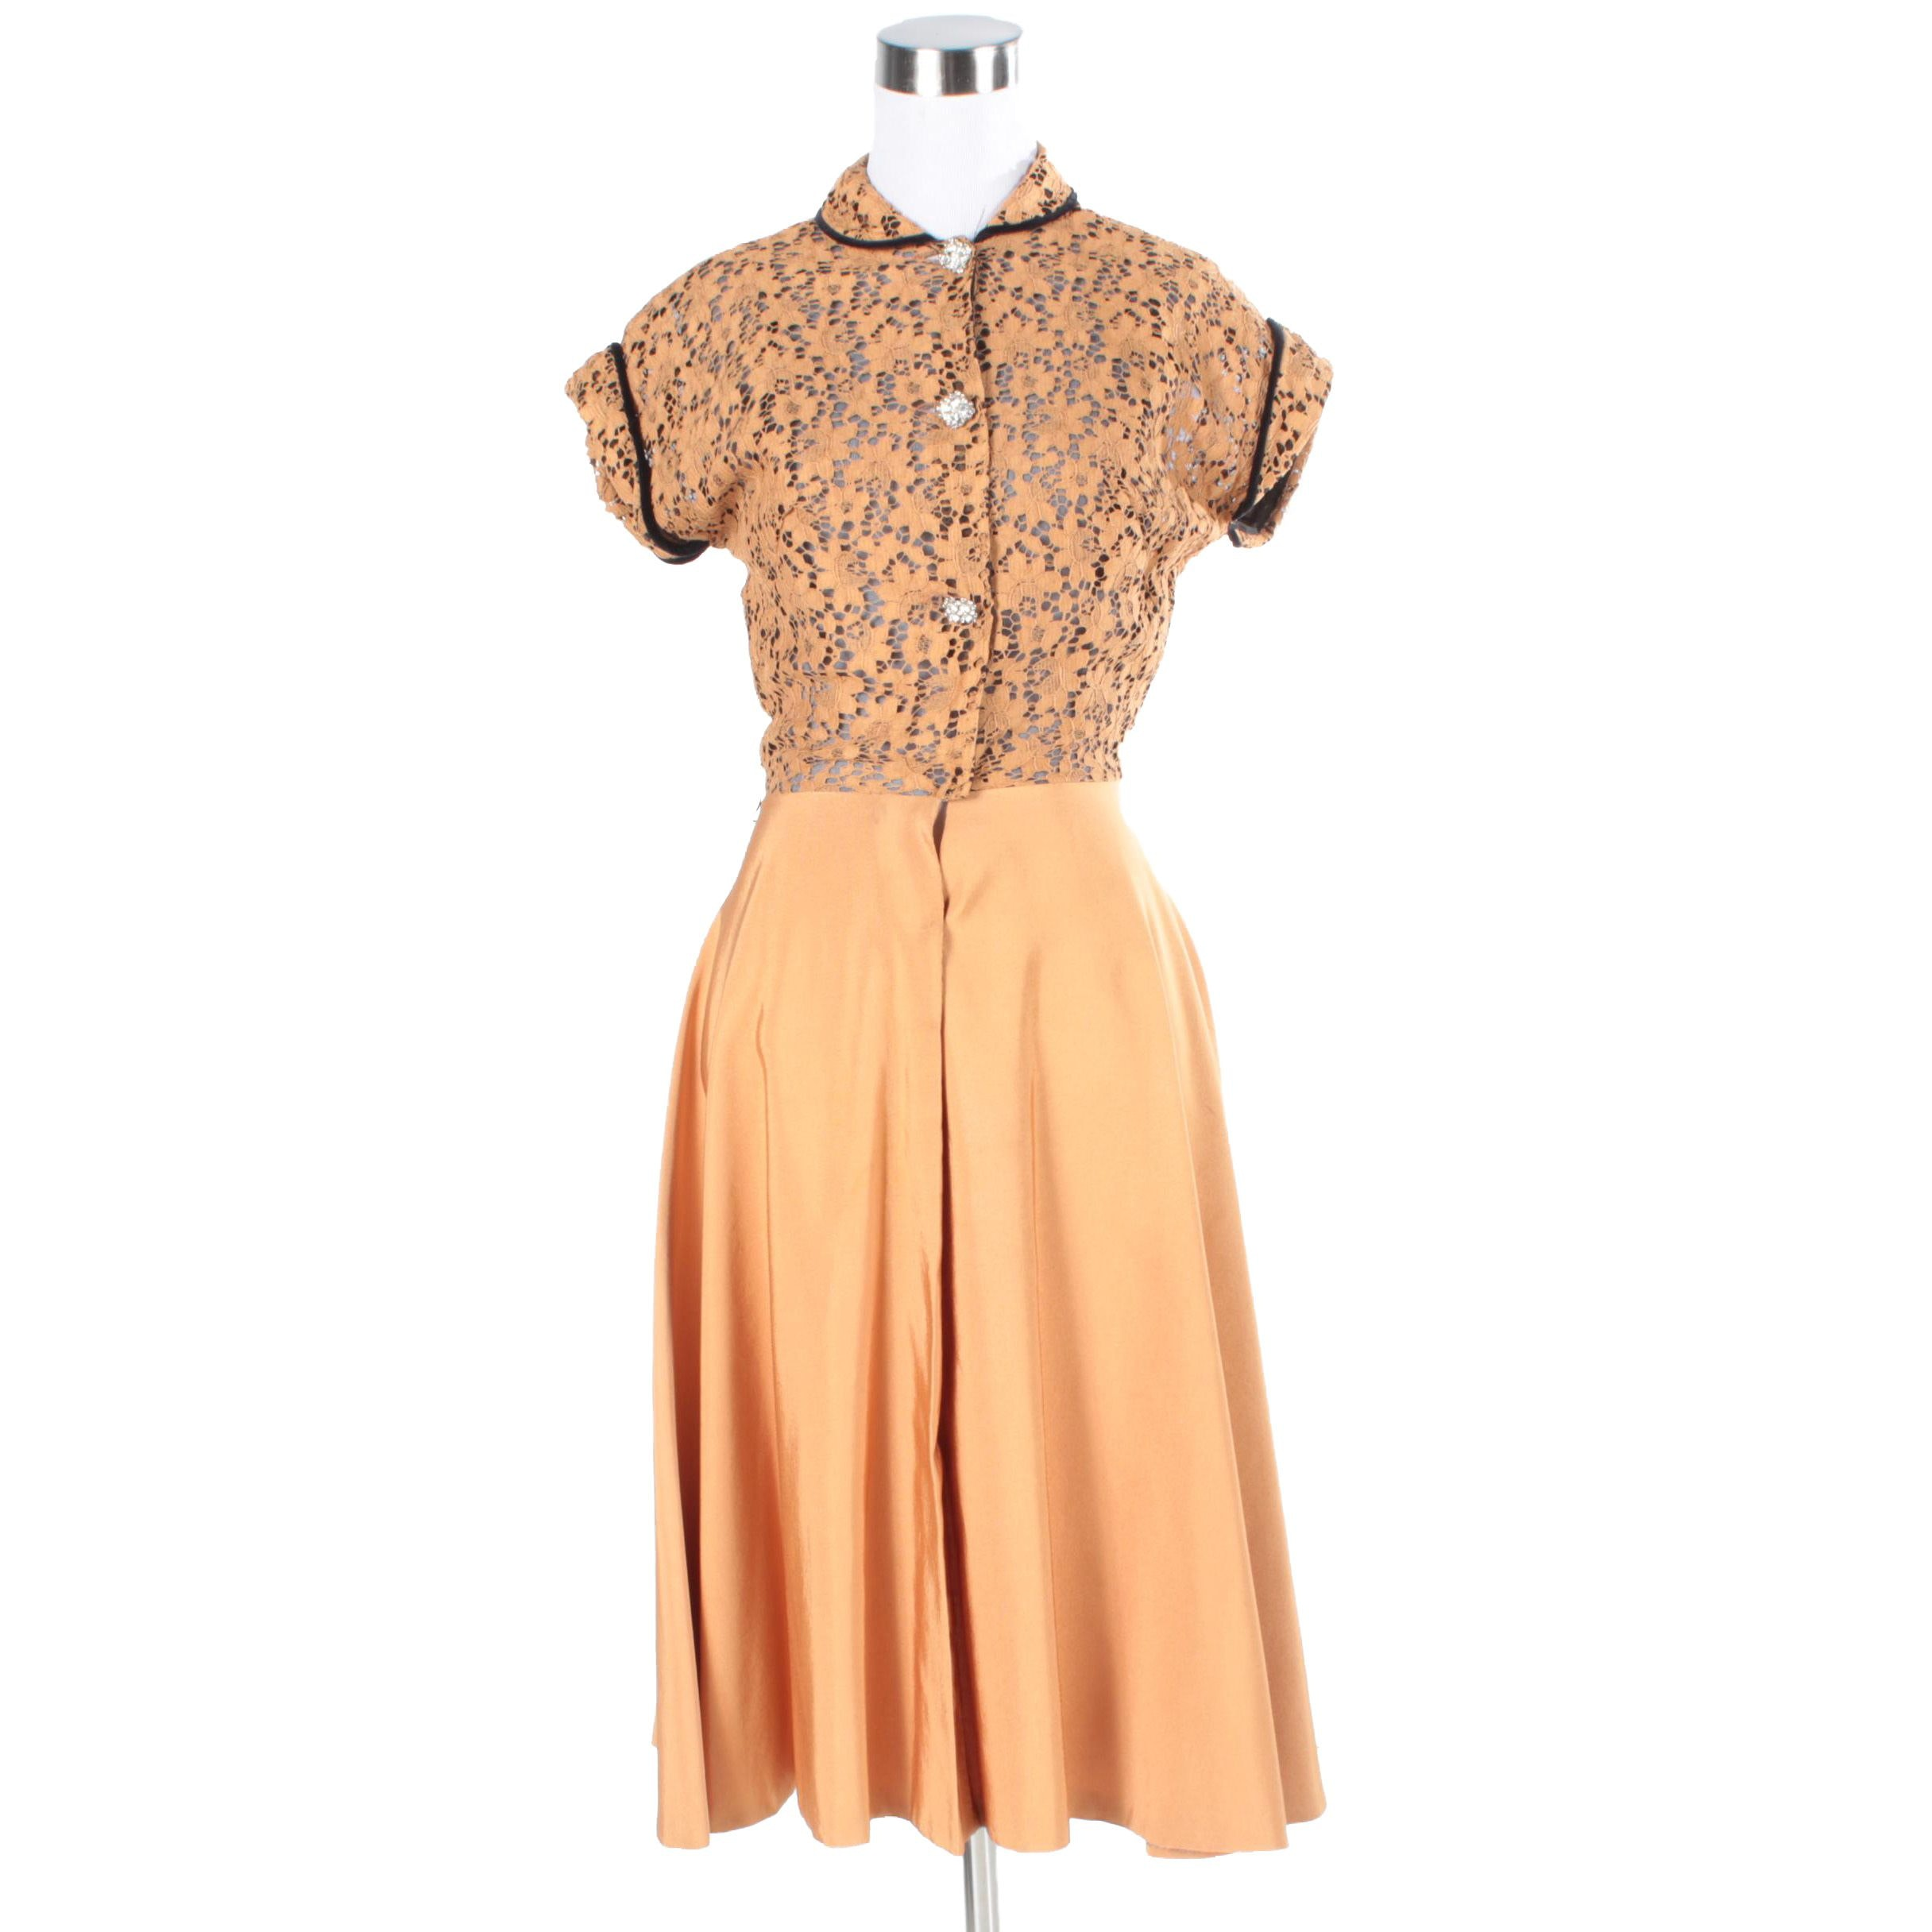 1950s Tangerine Lace Dress with Rhinestone Buttons